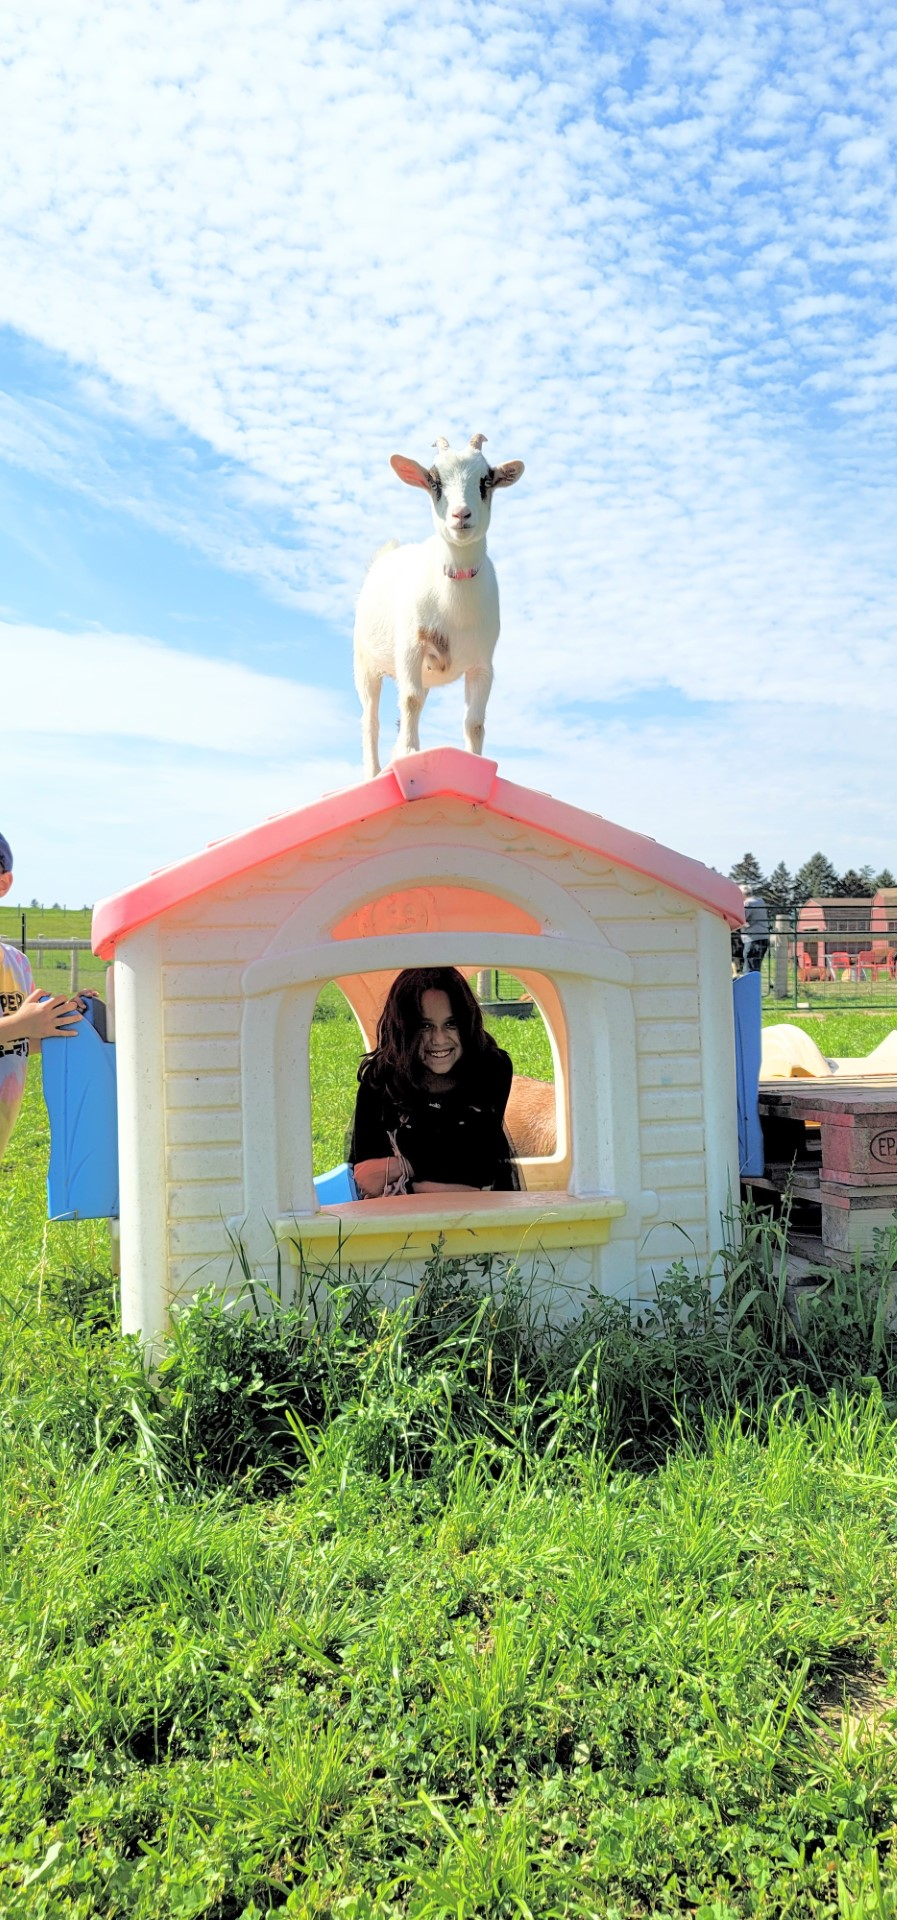 goat on house with little girl inside